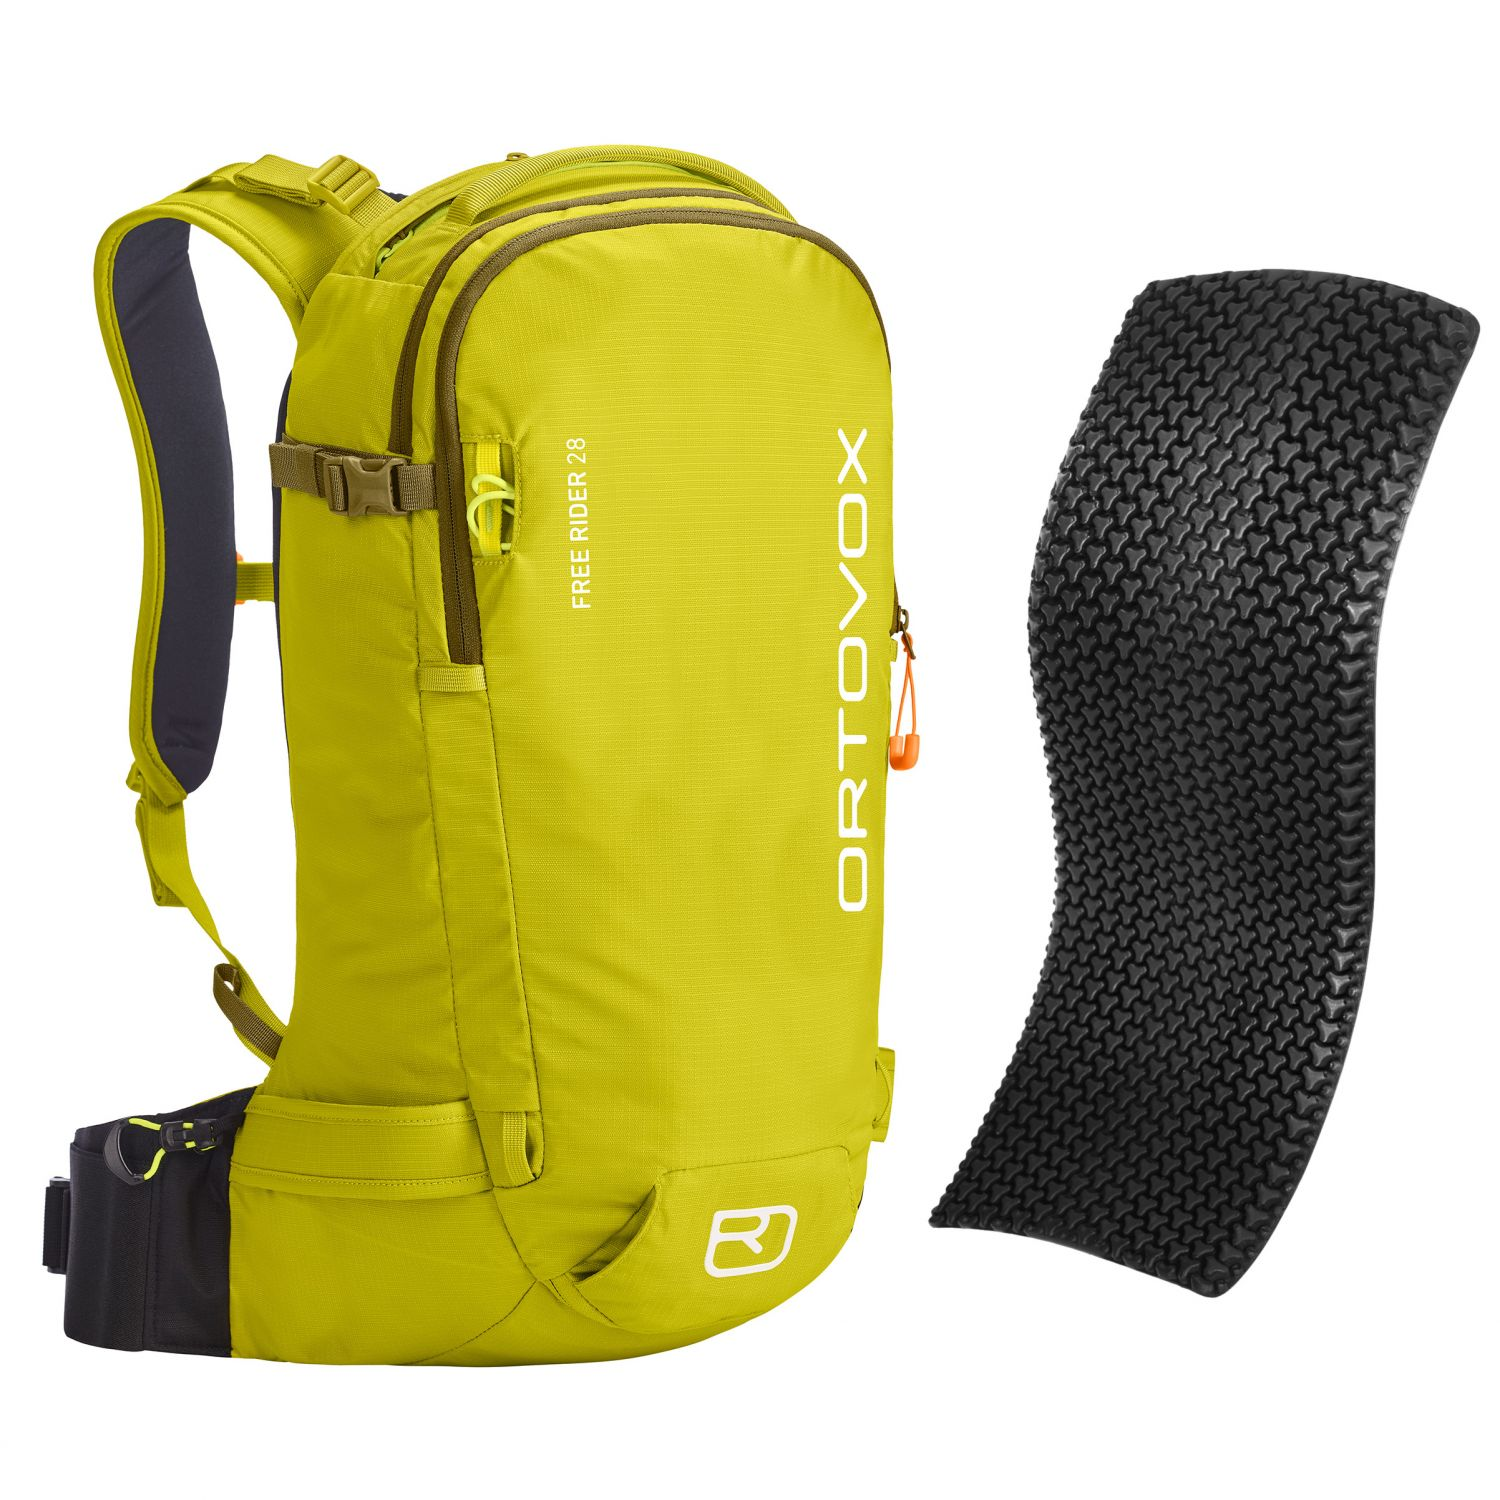 Ortovox Free Rider 28 + Spine Protector, dirty daisy